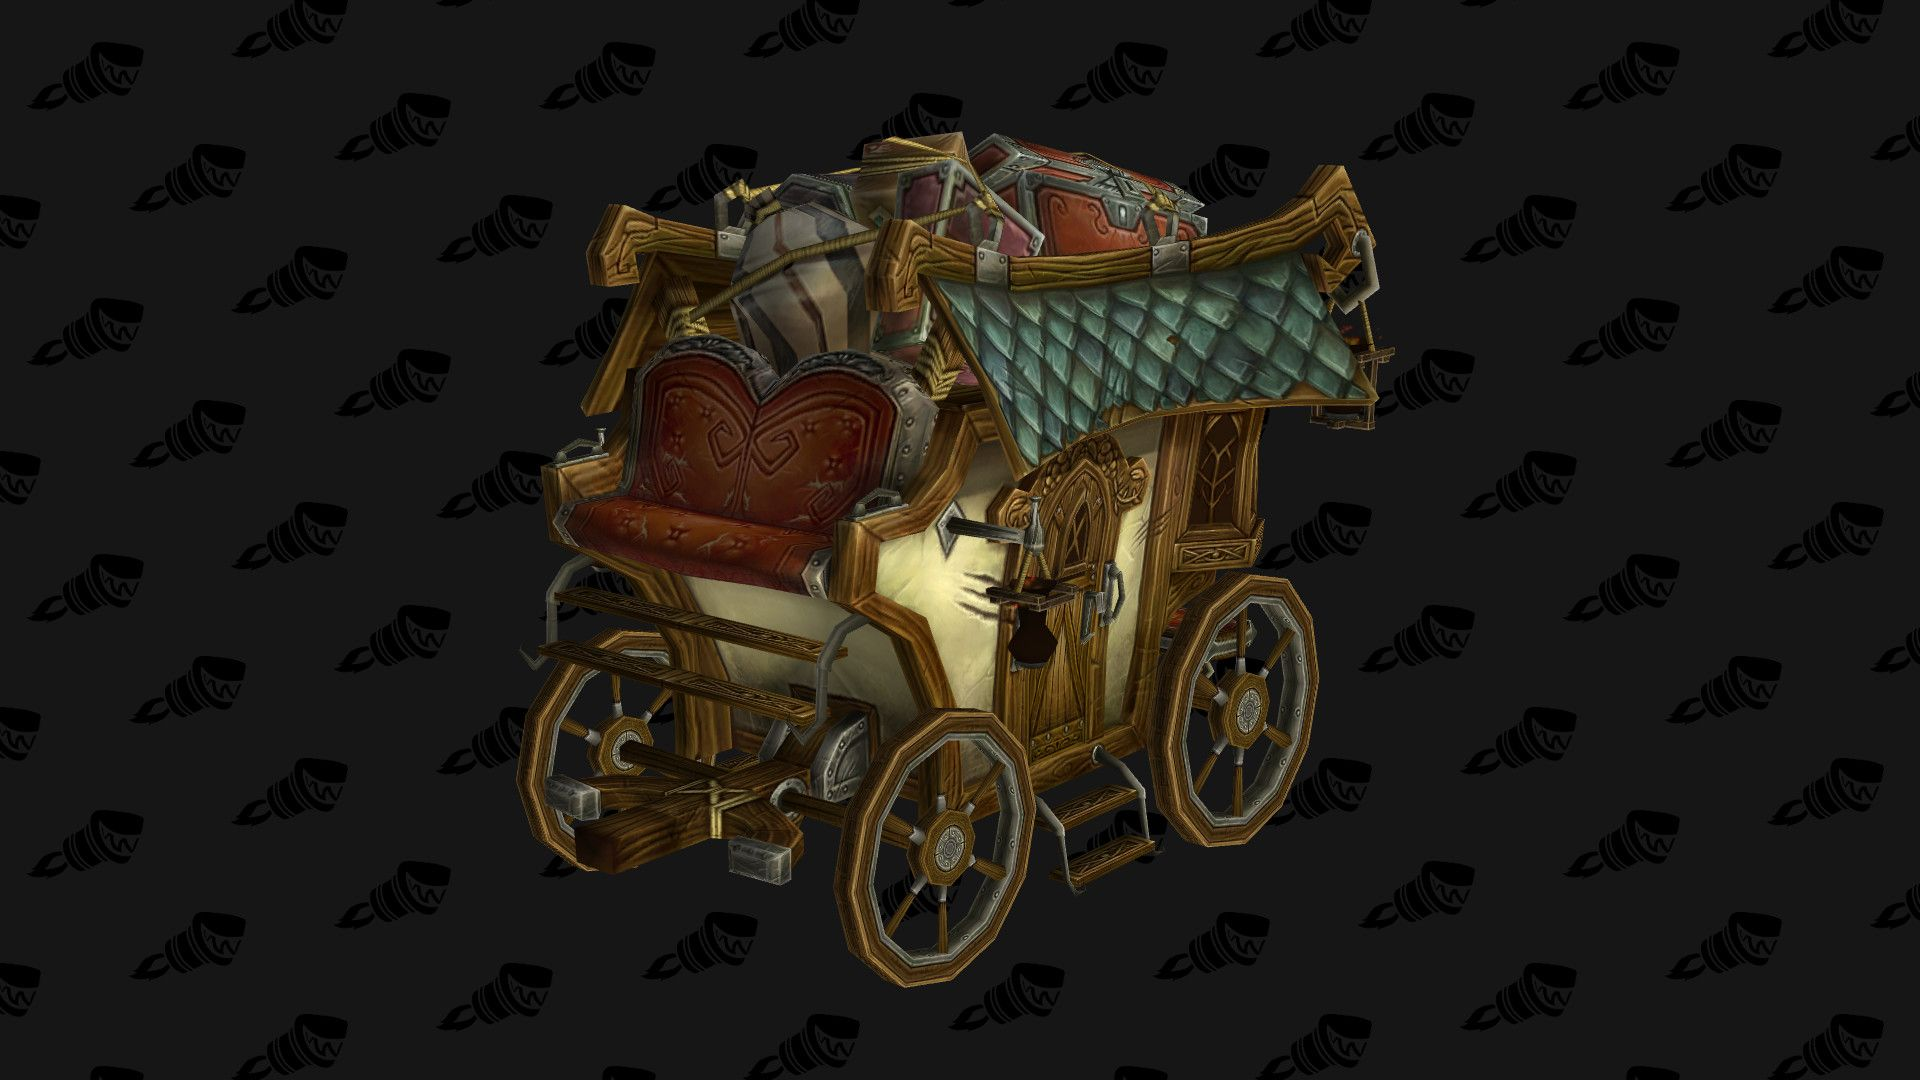 Stagecoach from World of Warcraft wagon cart carriage